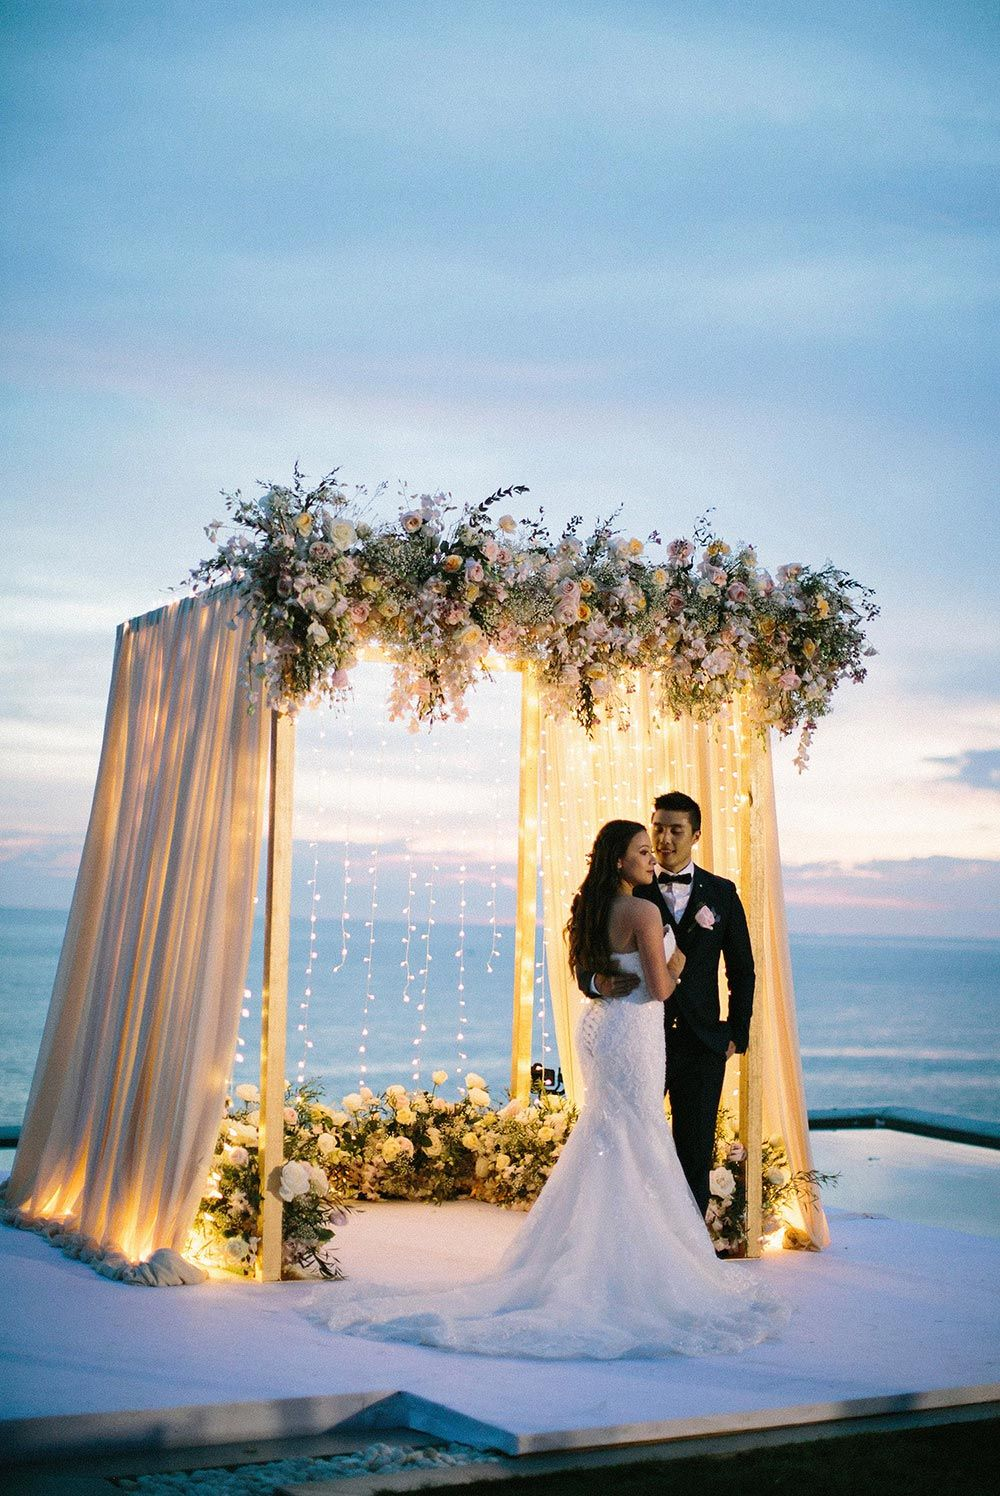 Mesmerizing Phuket Wedding with Soft Pastels ⋆ Ruffled – Boda fotos